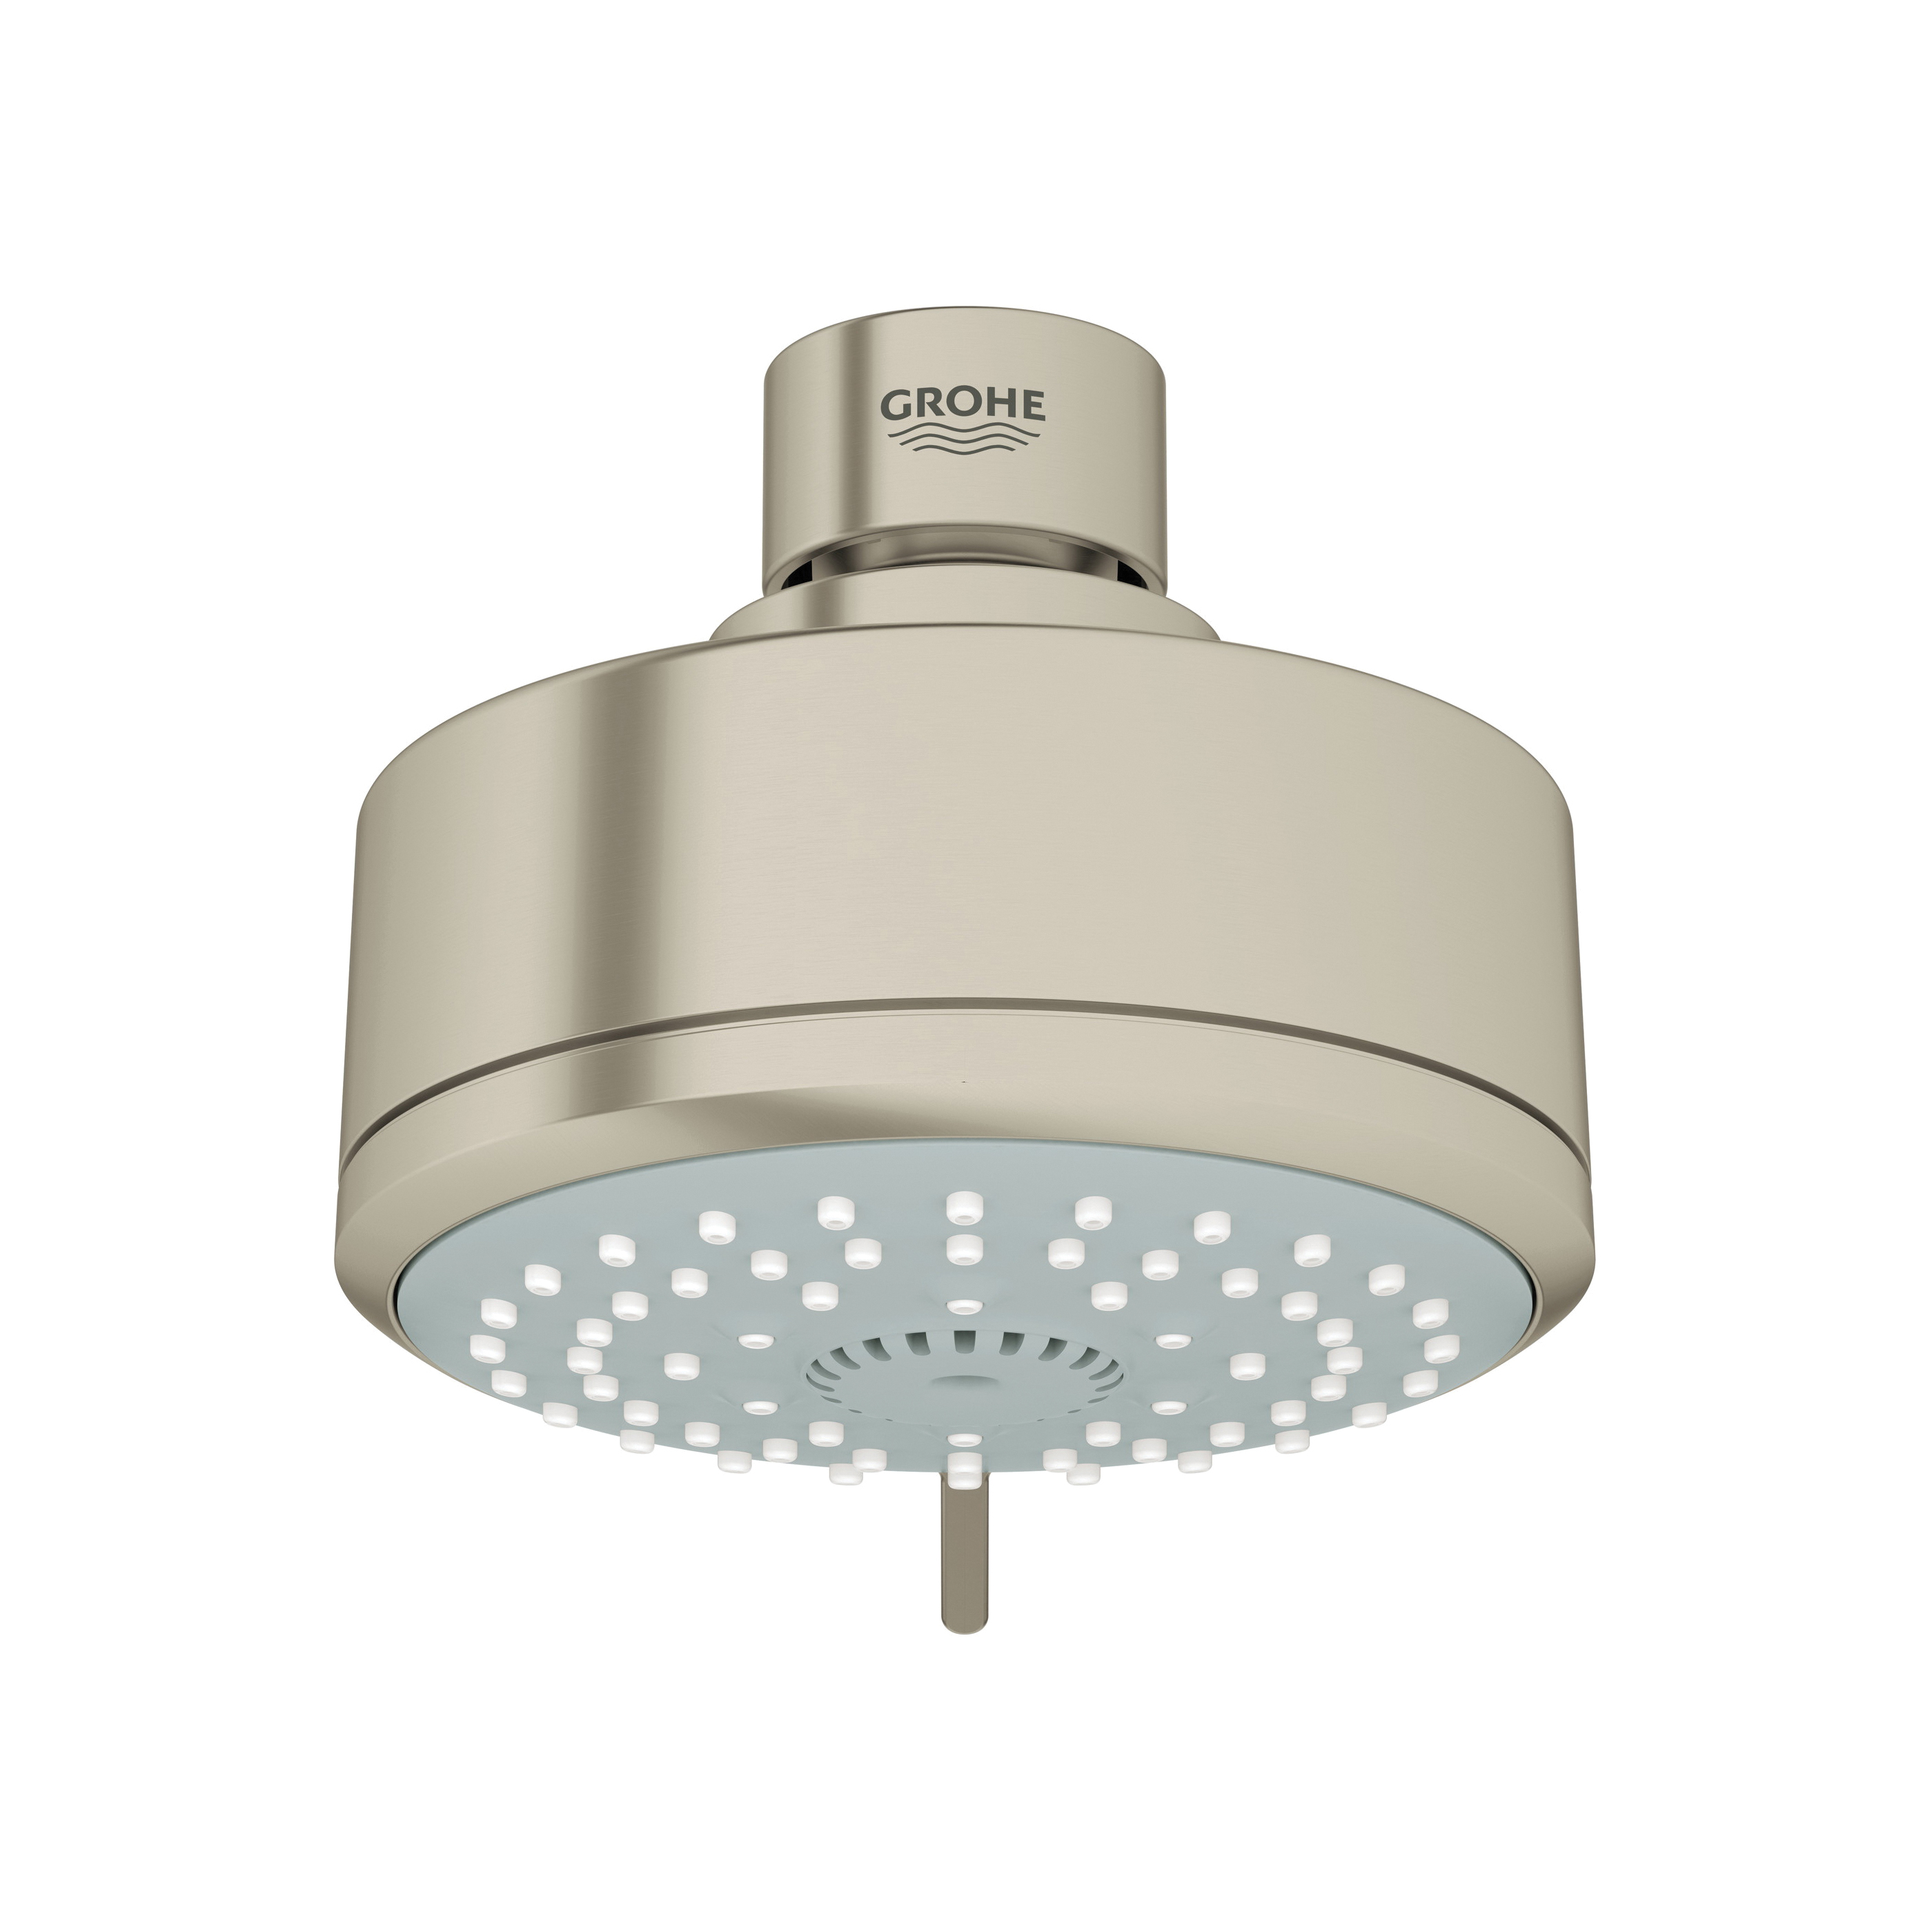 GROHE 27591EN0 Shower Head, New Tempesta® Cosmopolitan 100, 2.5 gpm Minimum, 4 Sprays, Wall Mount, 3-15/16 in Dia Head, Import